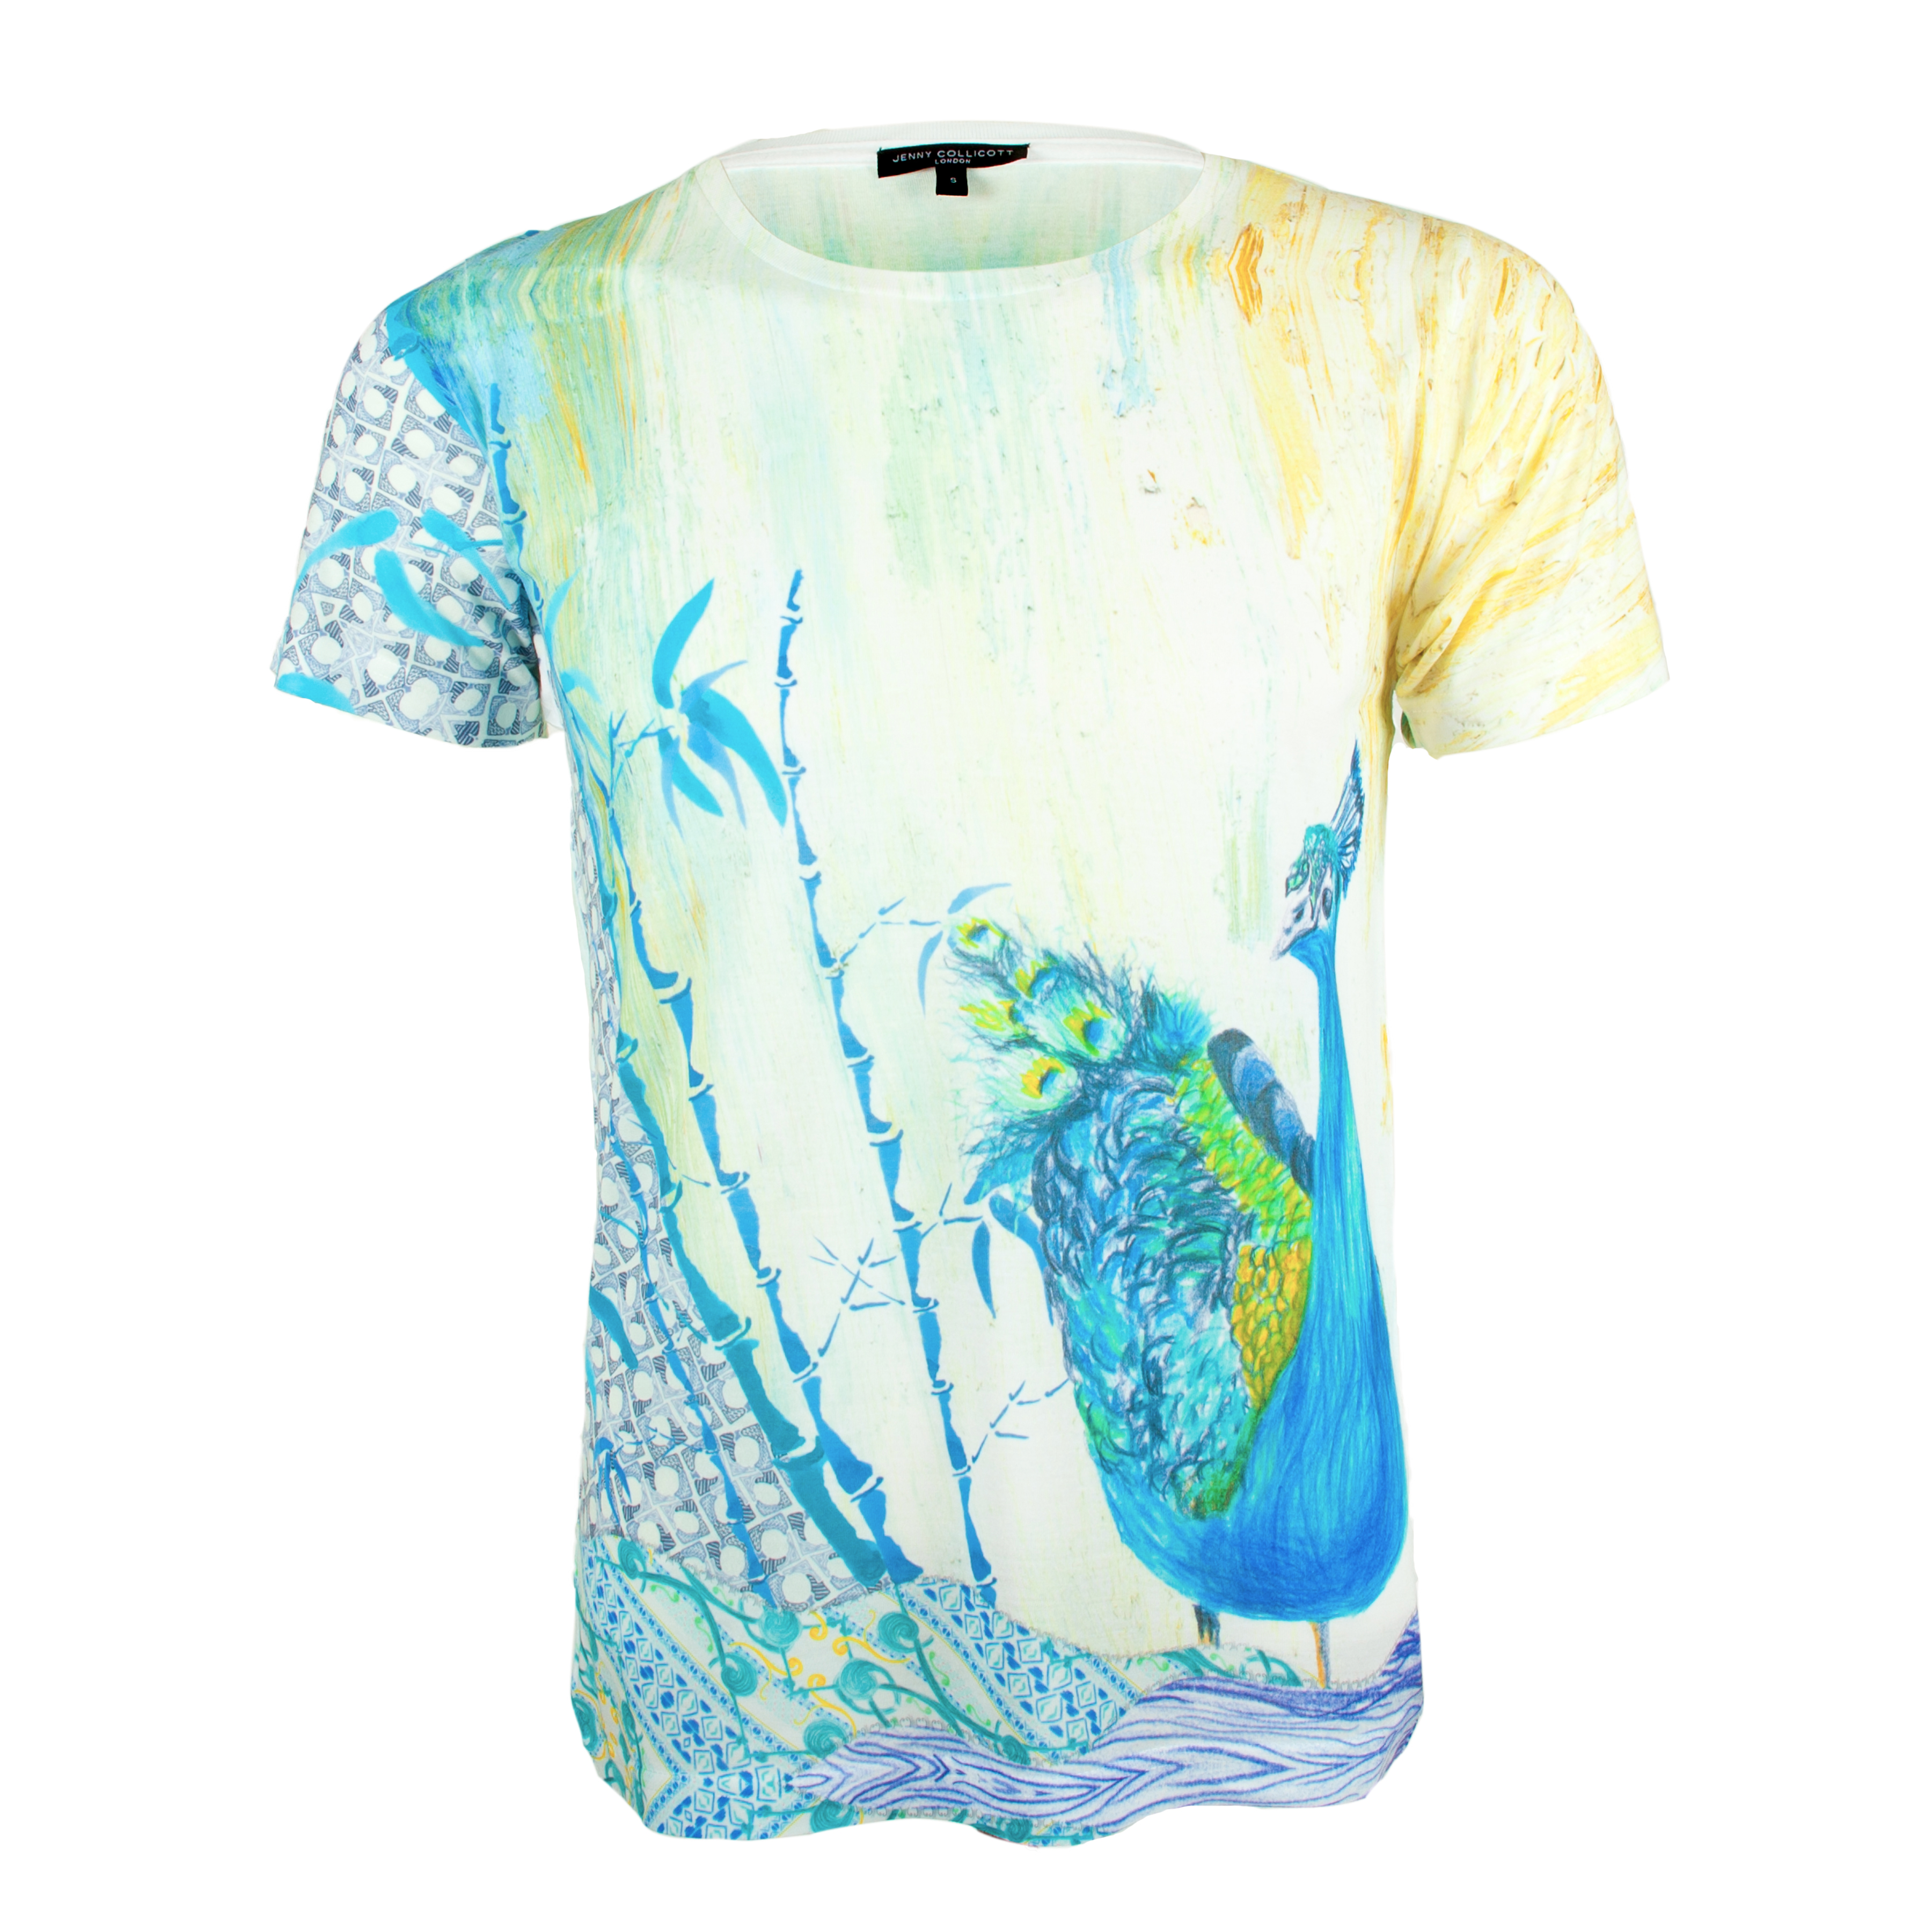 Unisex illustrated printed peacock t shirt by jenny collicott for Local t shirt printing companies